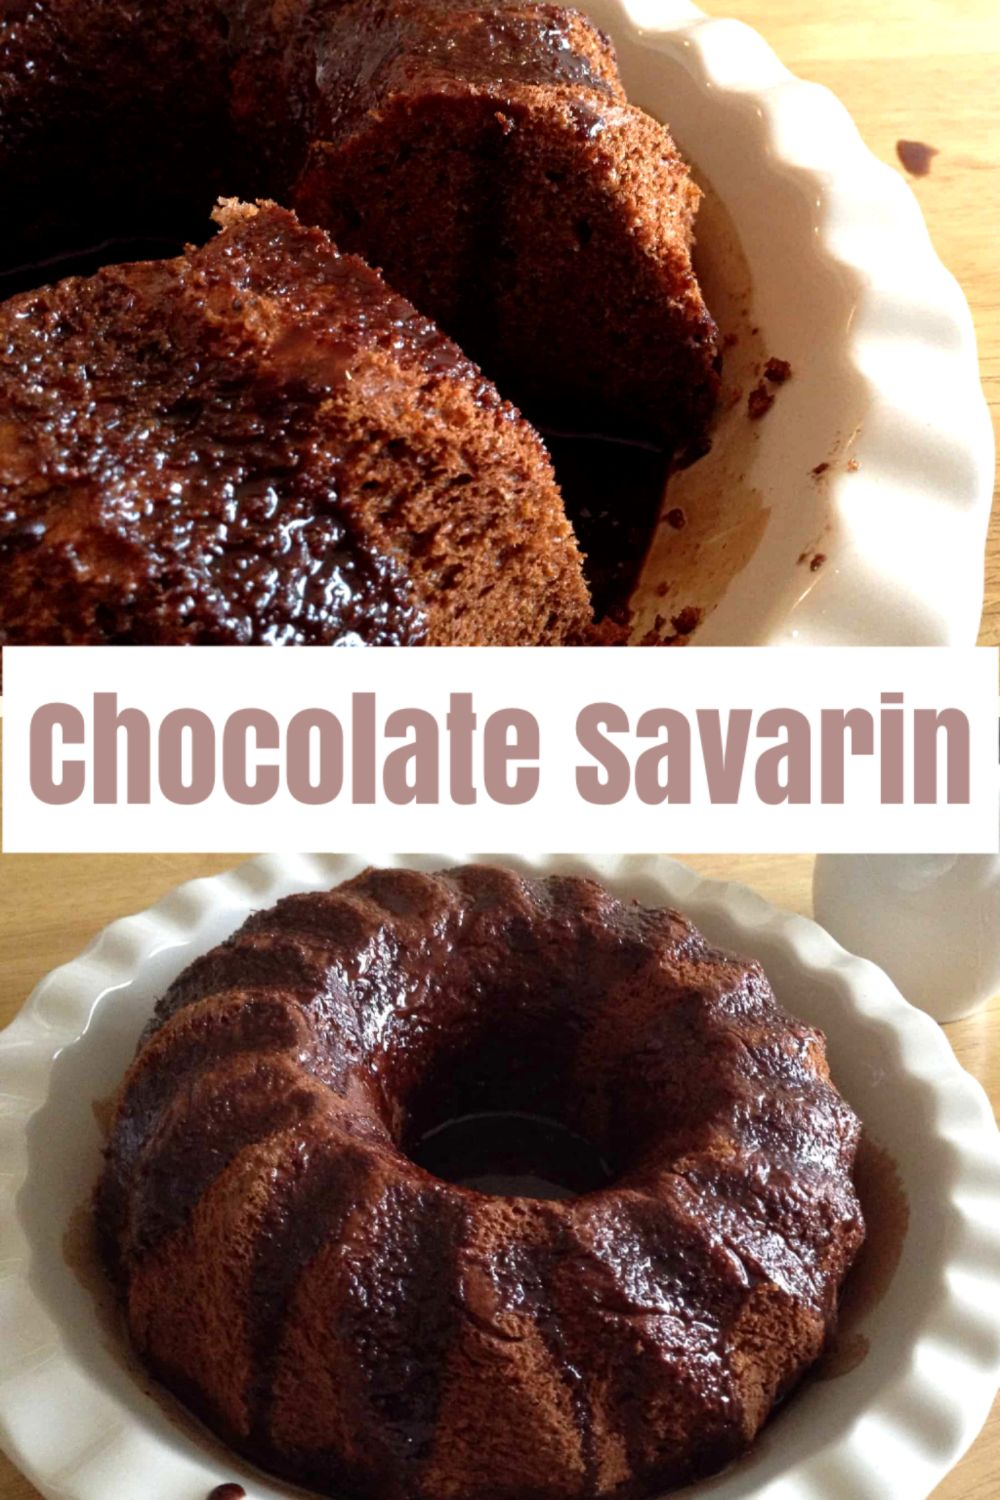 Chocolate Savarin drenched in Chocolate Syrup